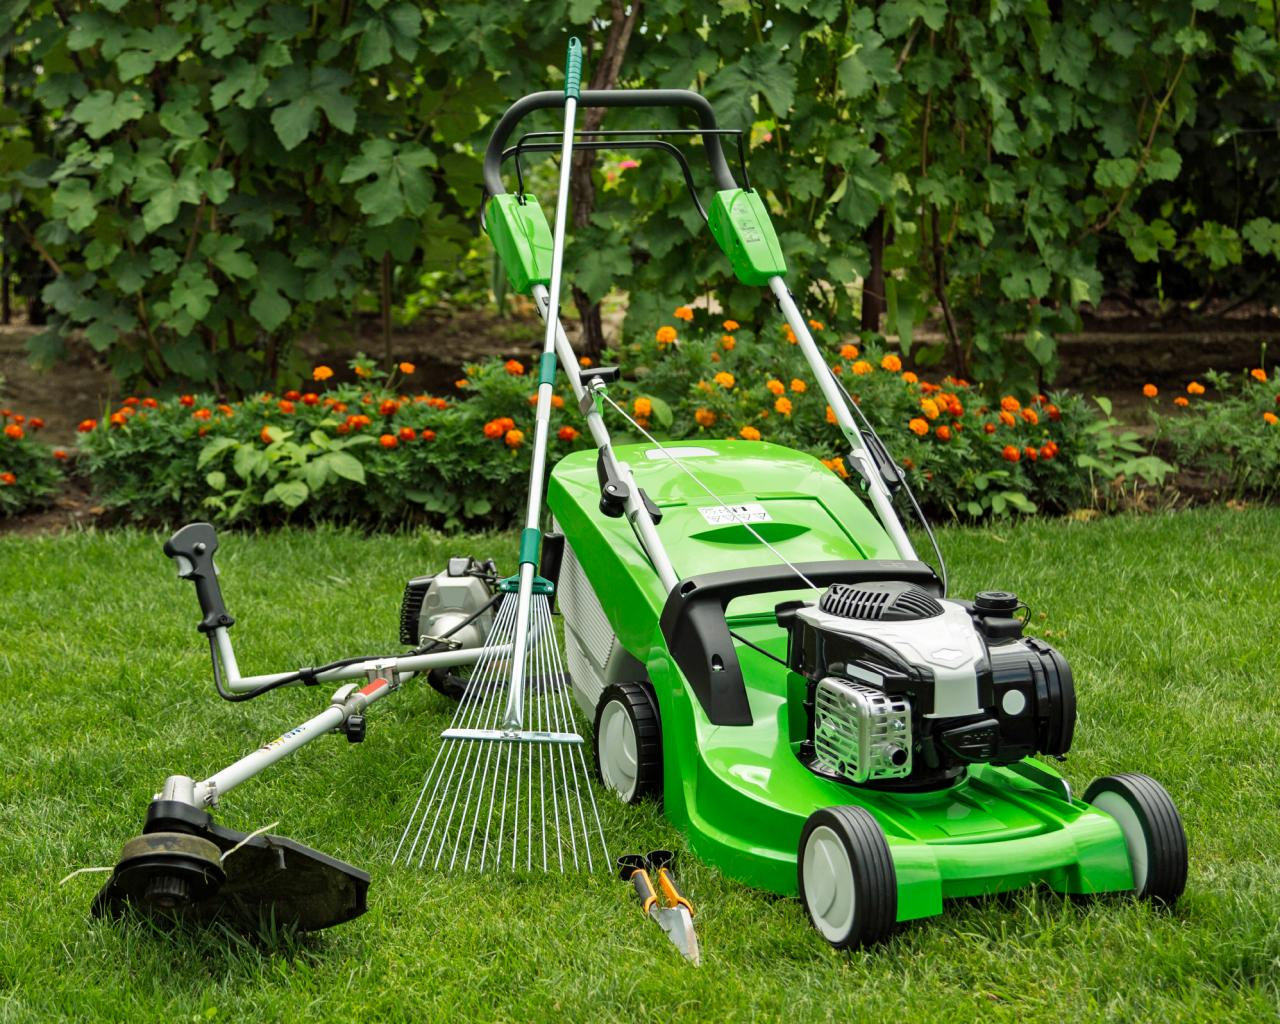 equipment for lawn maintenance